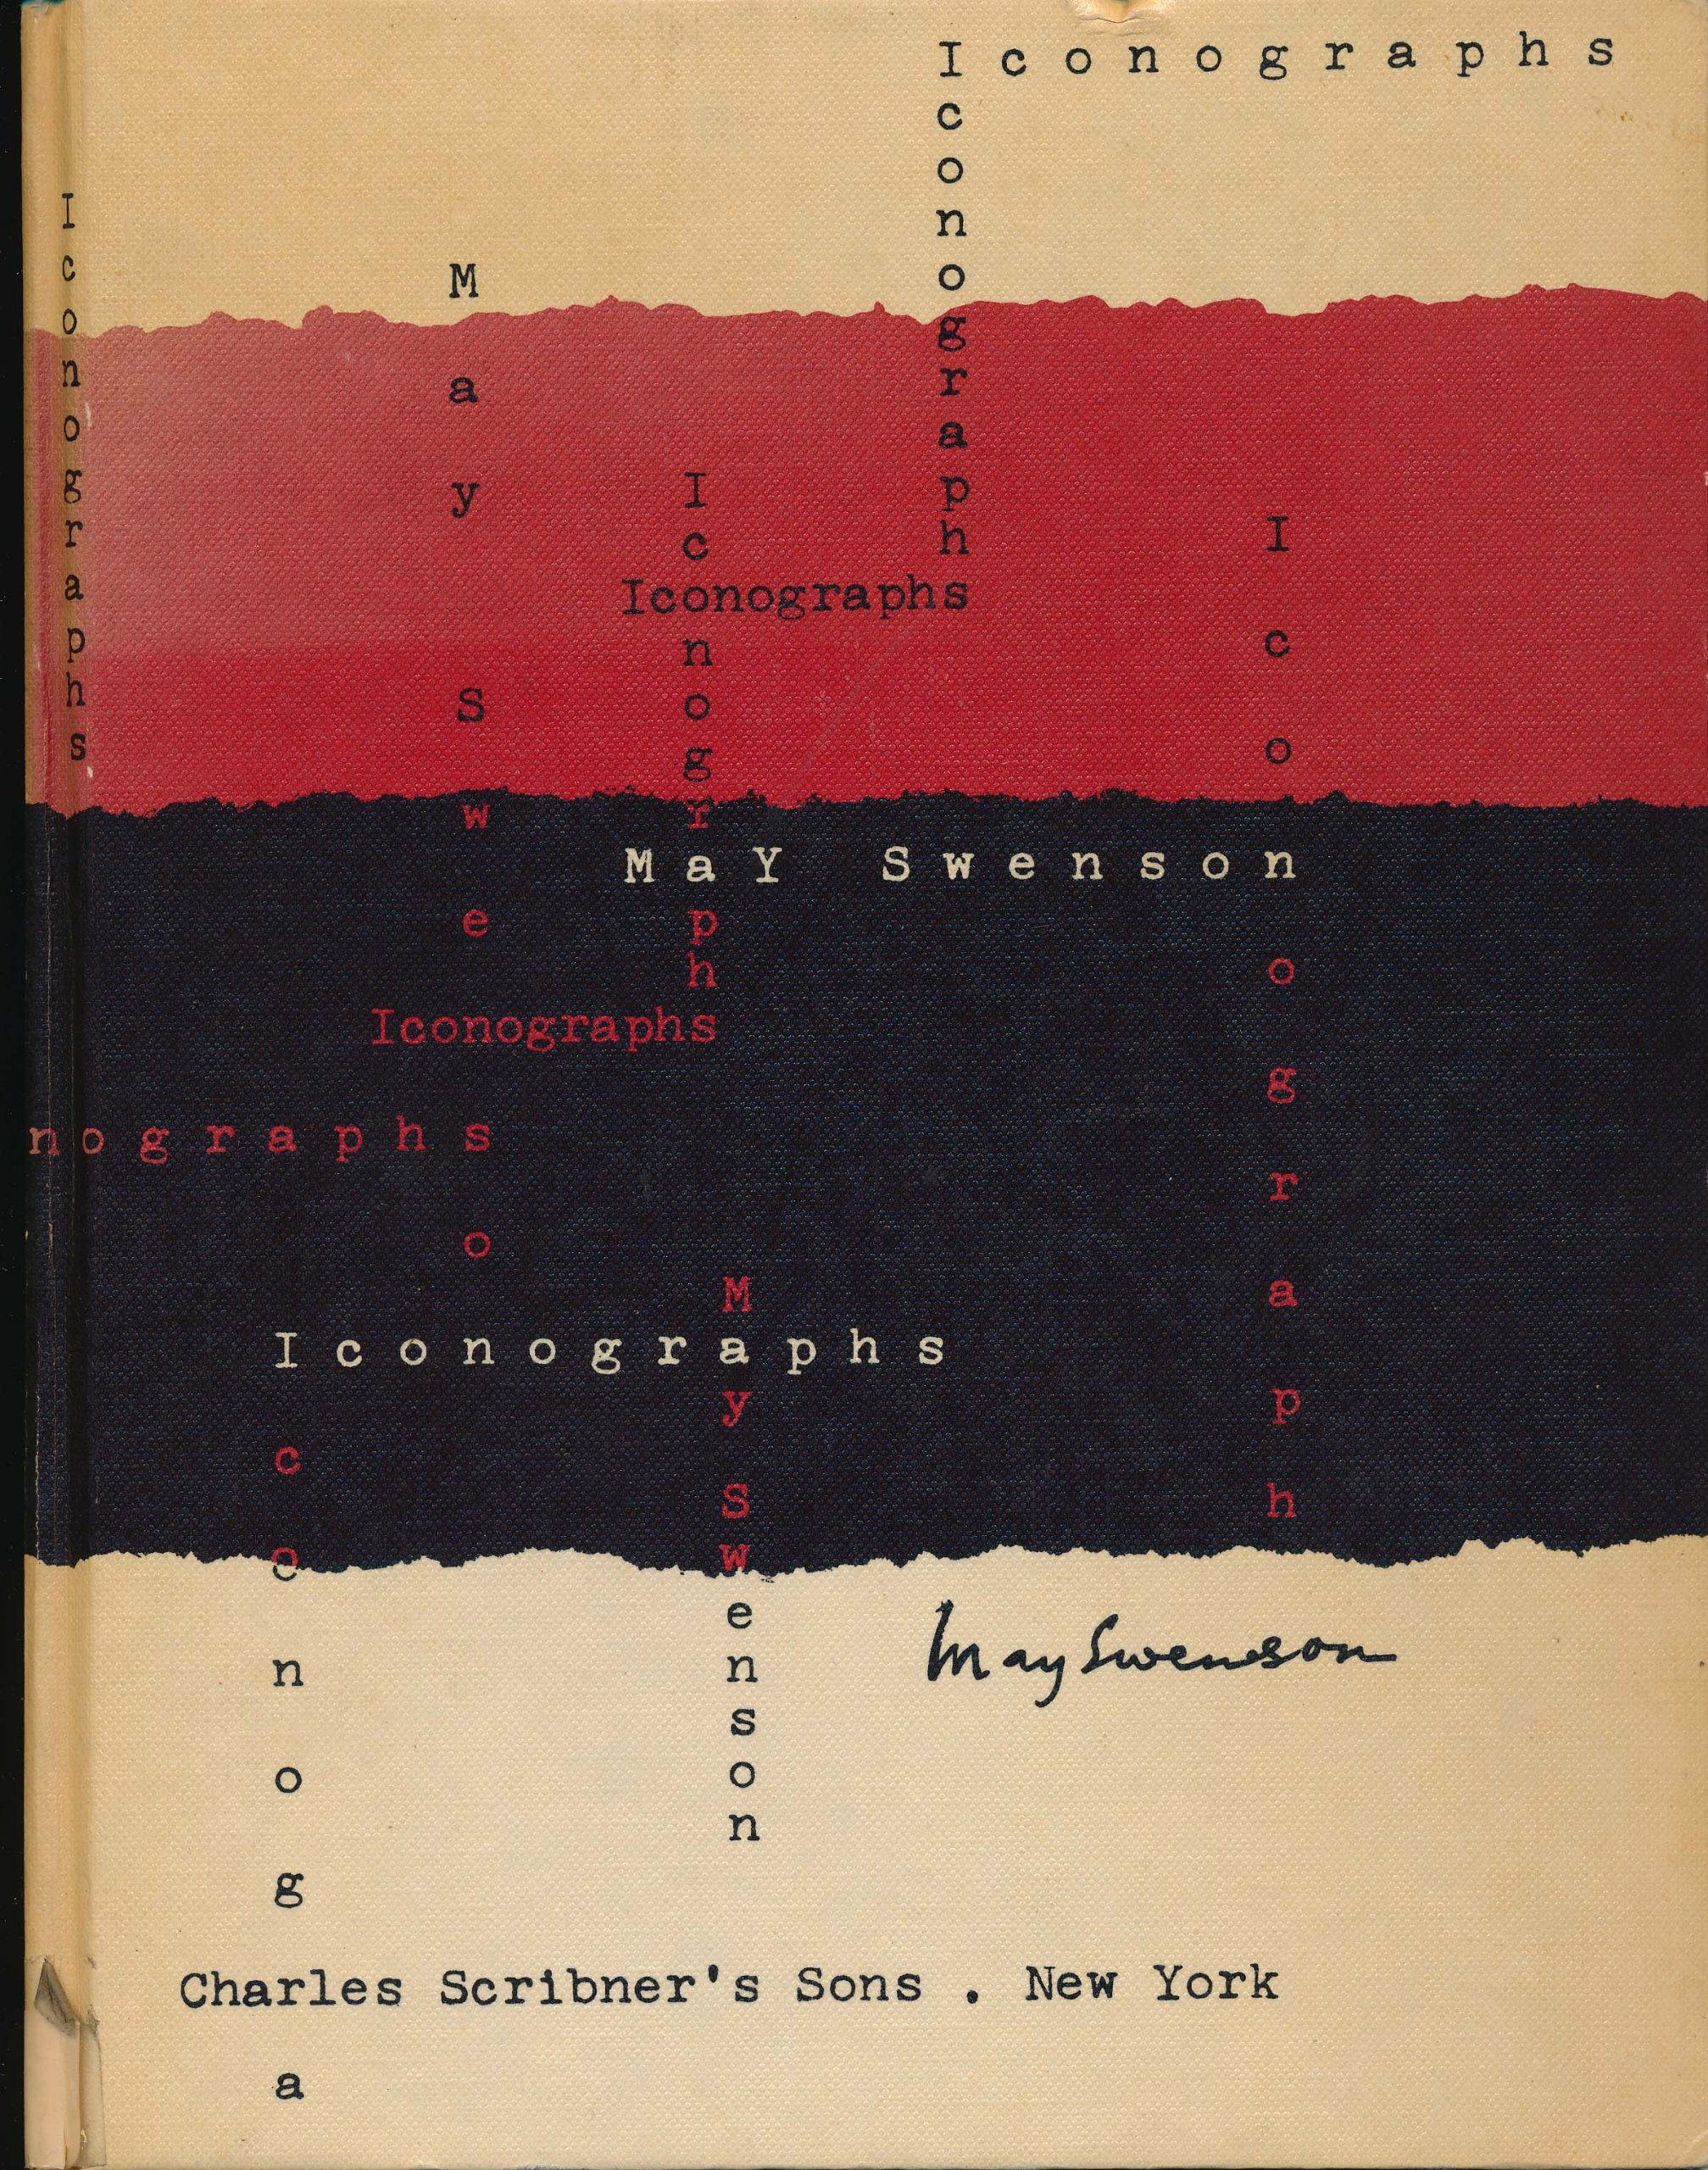 cover of Iconographs by May Swenson